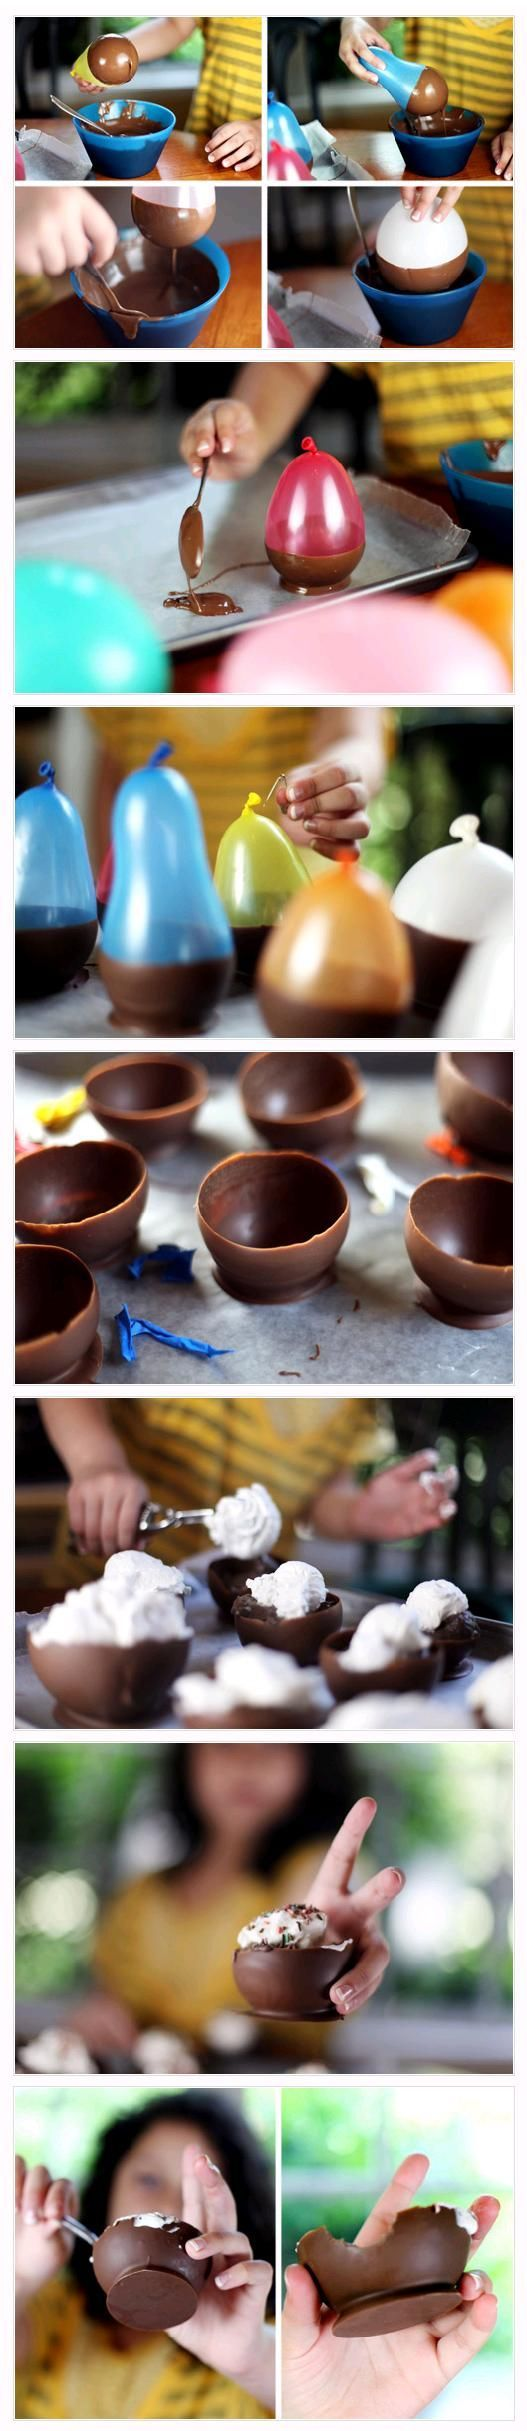 Chocolate mug that you can eat! - Via thenewspatroller.com: Chocolate Bowls, Sweet, Food, Chocolate Cups, Ice Cream, Party Idea, Balloon